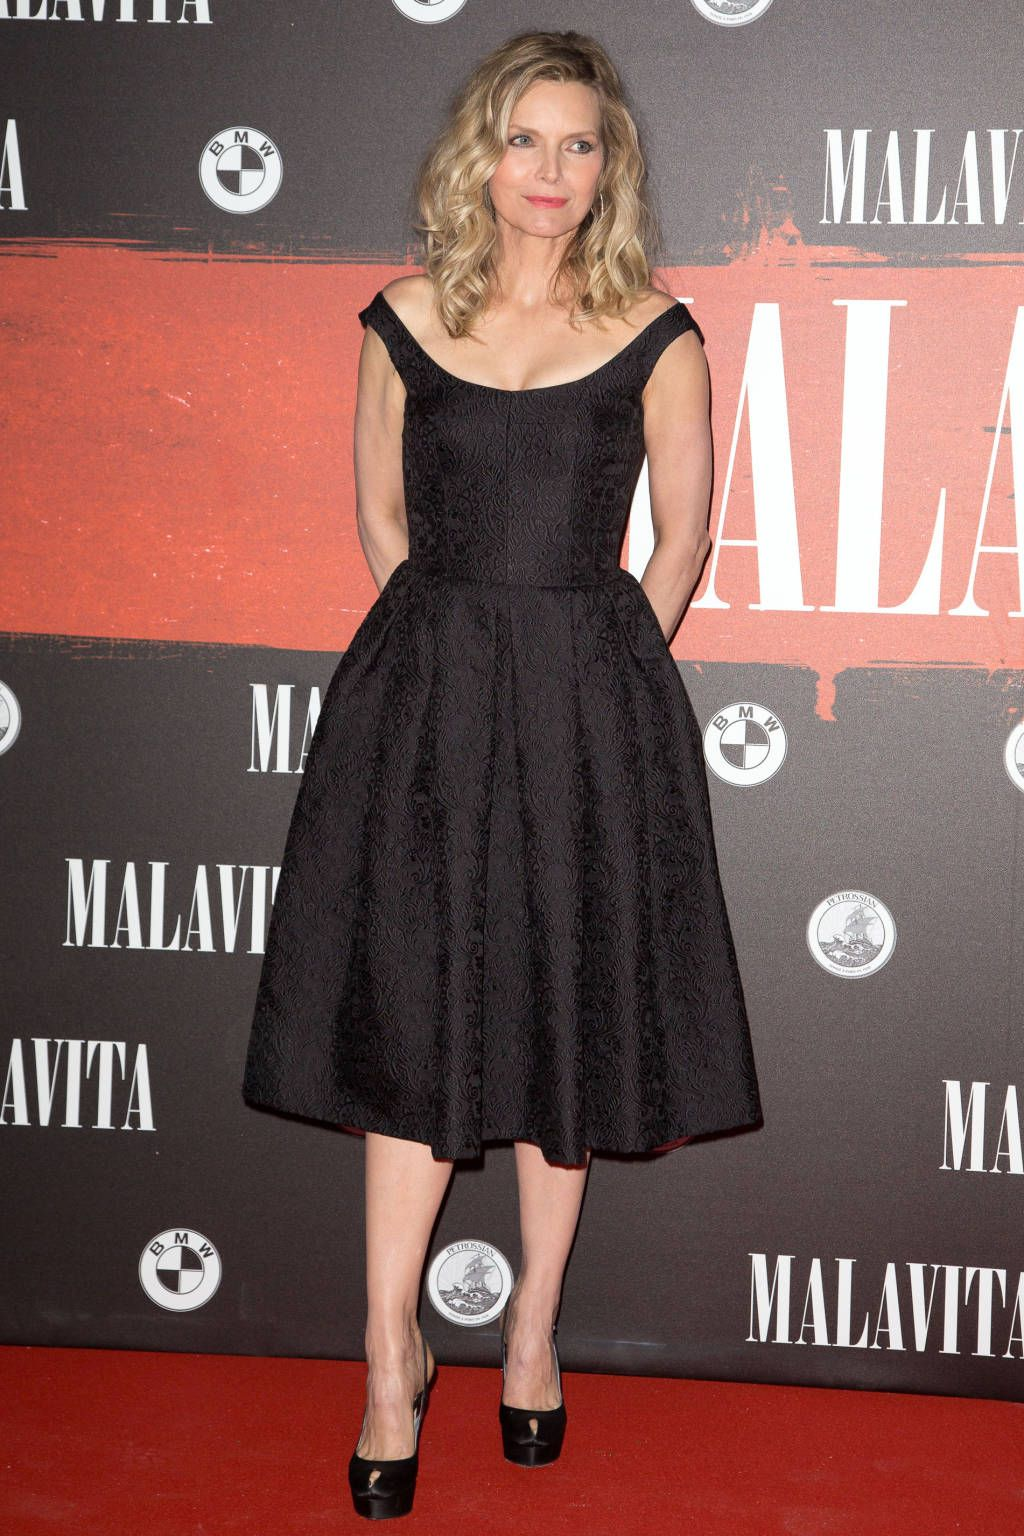 Fab at every age high contrast high contrast red carpet and